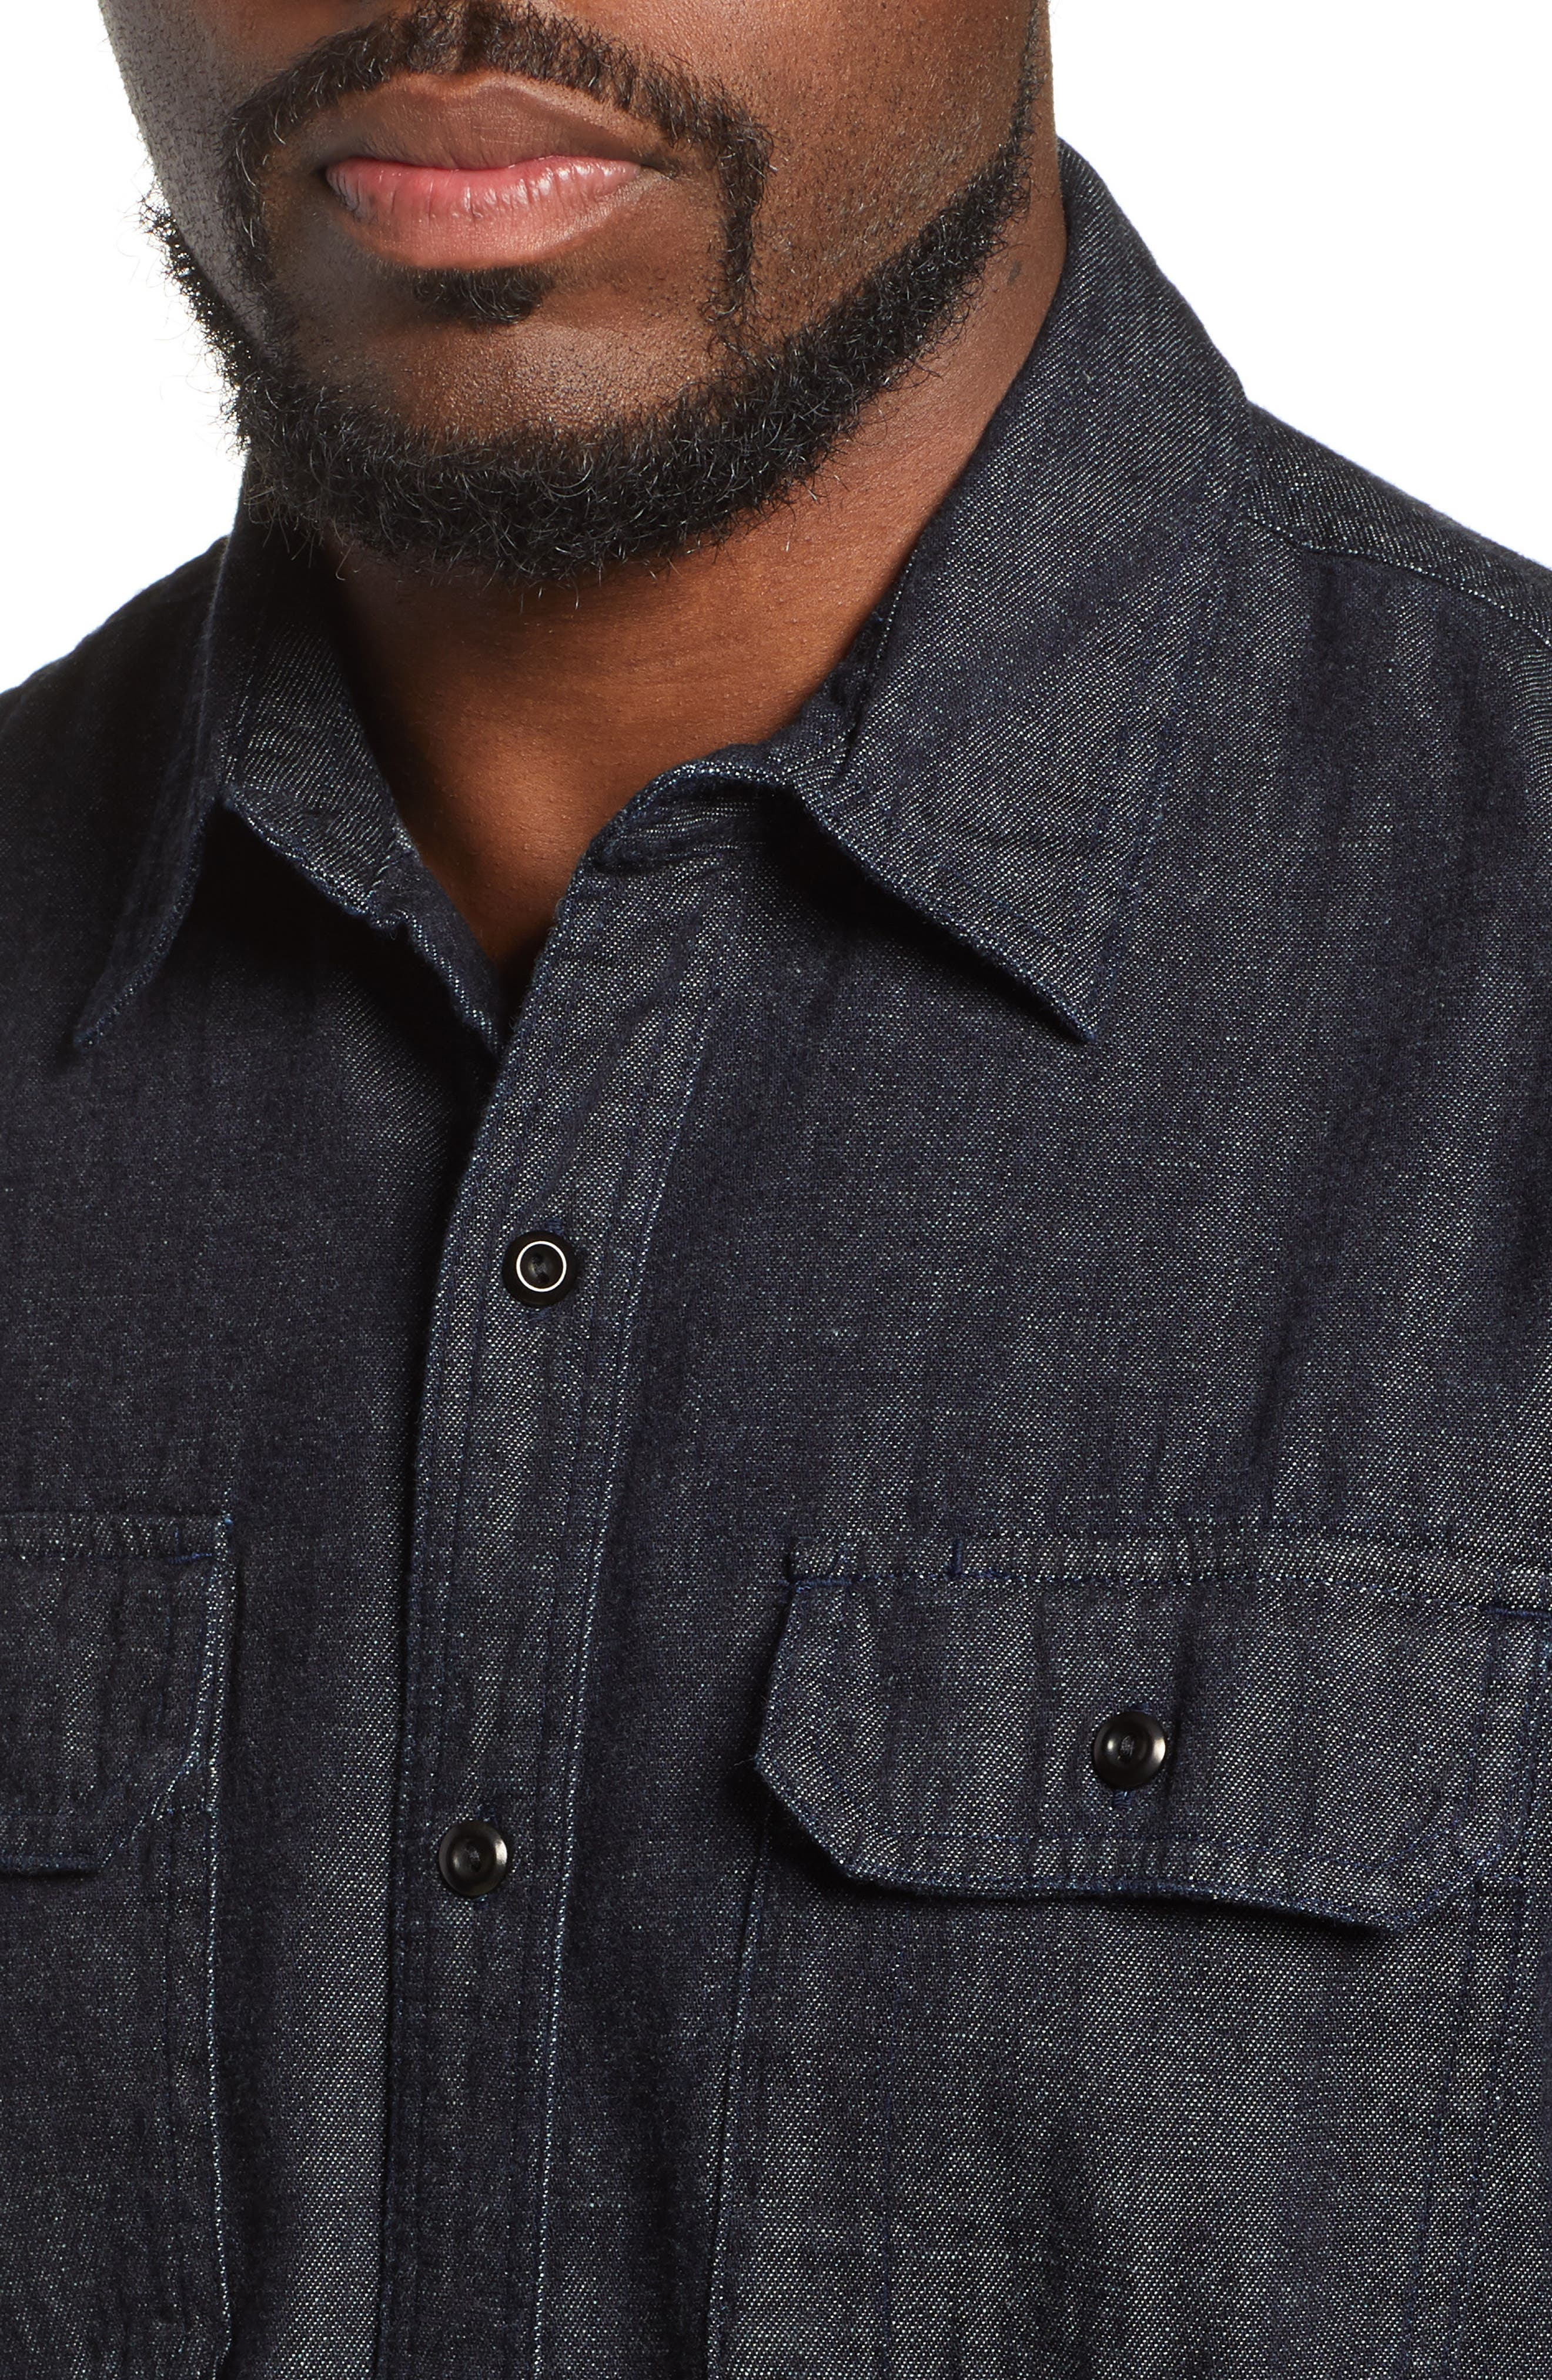 Benning Chambray Slim Fit Utility Shirt,                             Alternate thumbnail 2, color,                             020